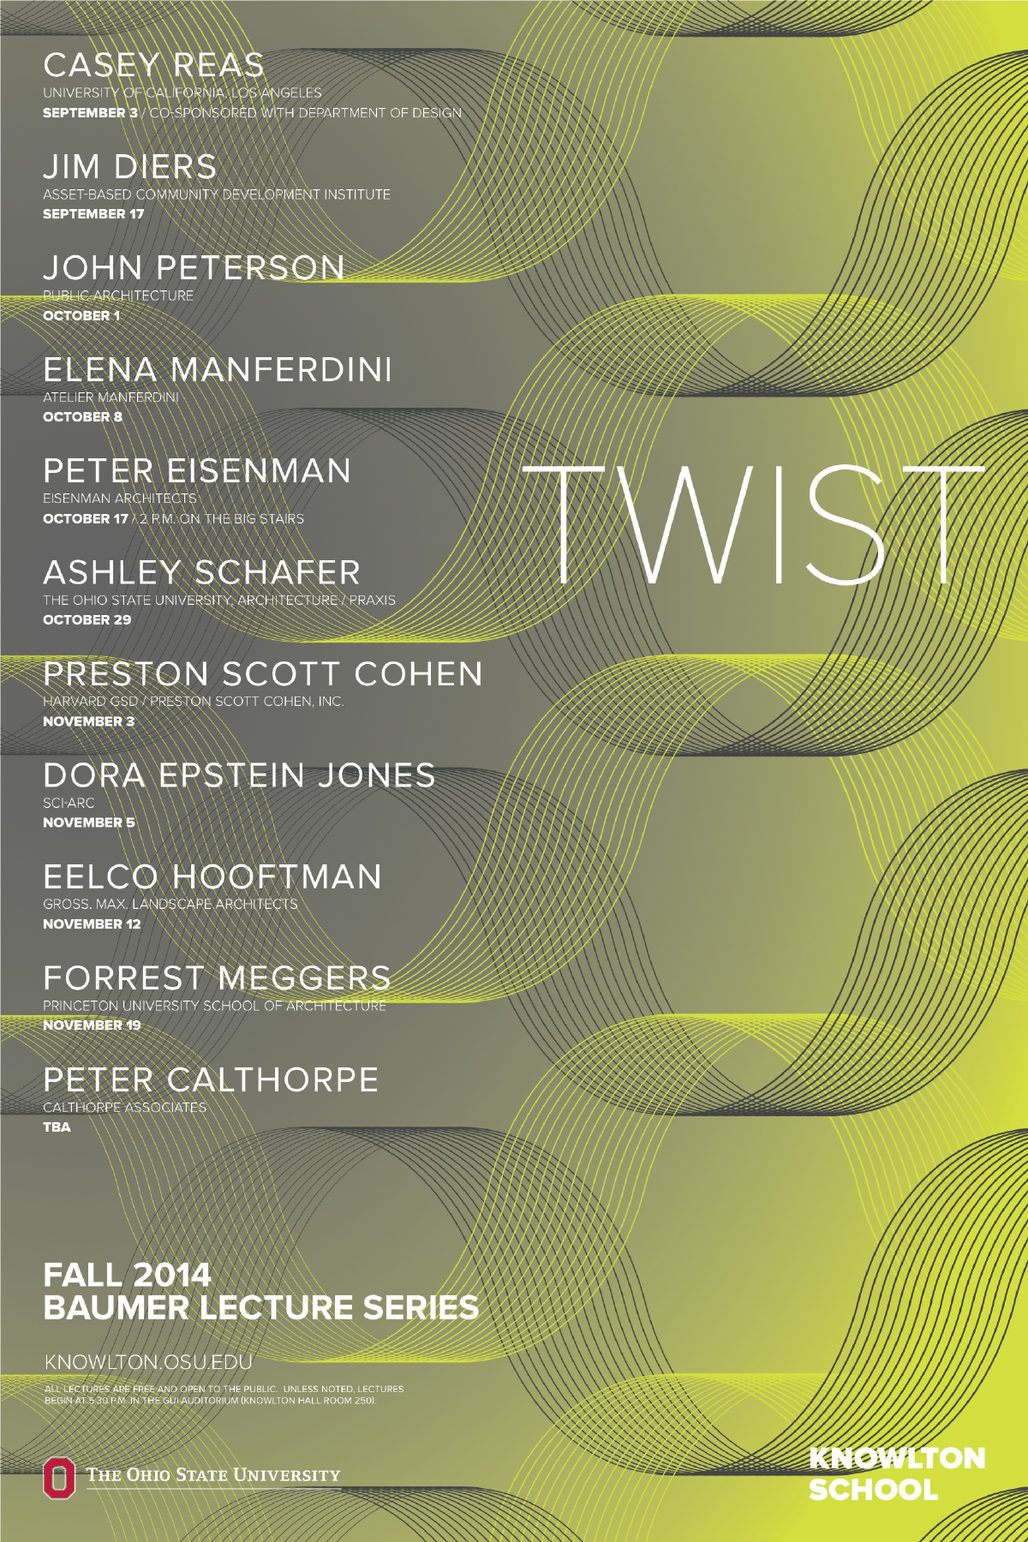 Fall 14 Baumer Lecture Series at Knowlton School of Architecture, Ohio State University. Image via knowlton.osu.edu